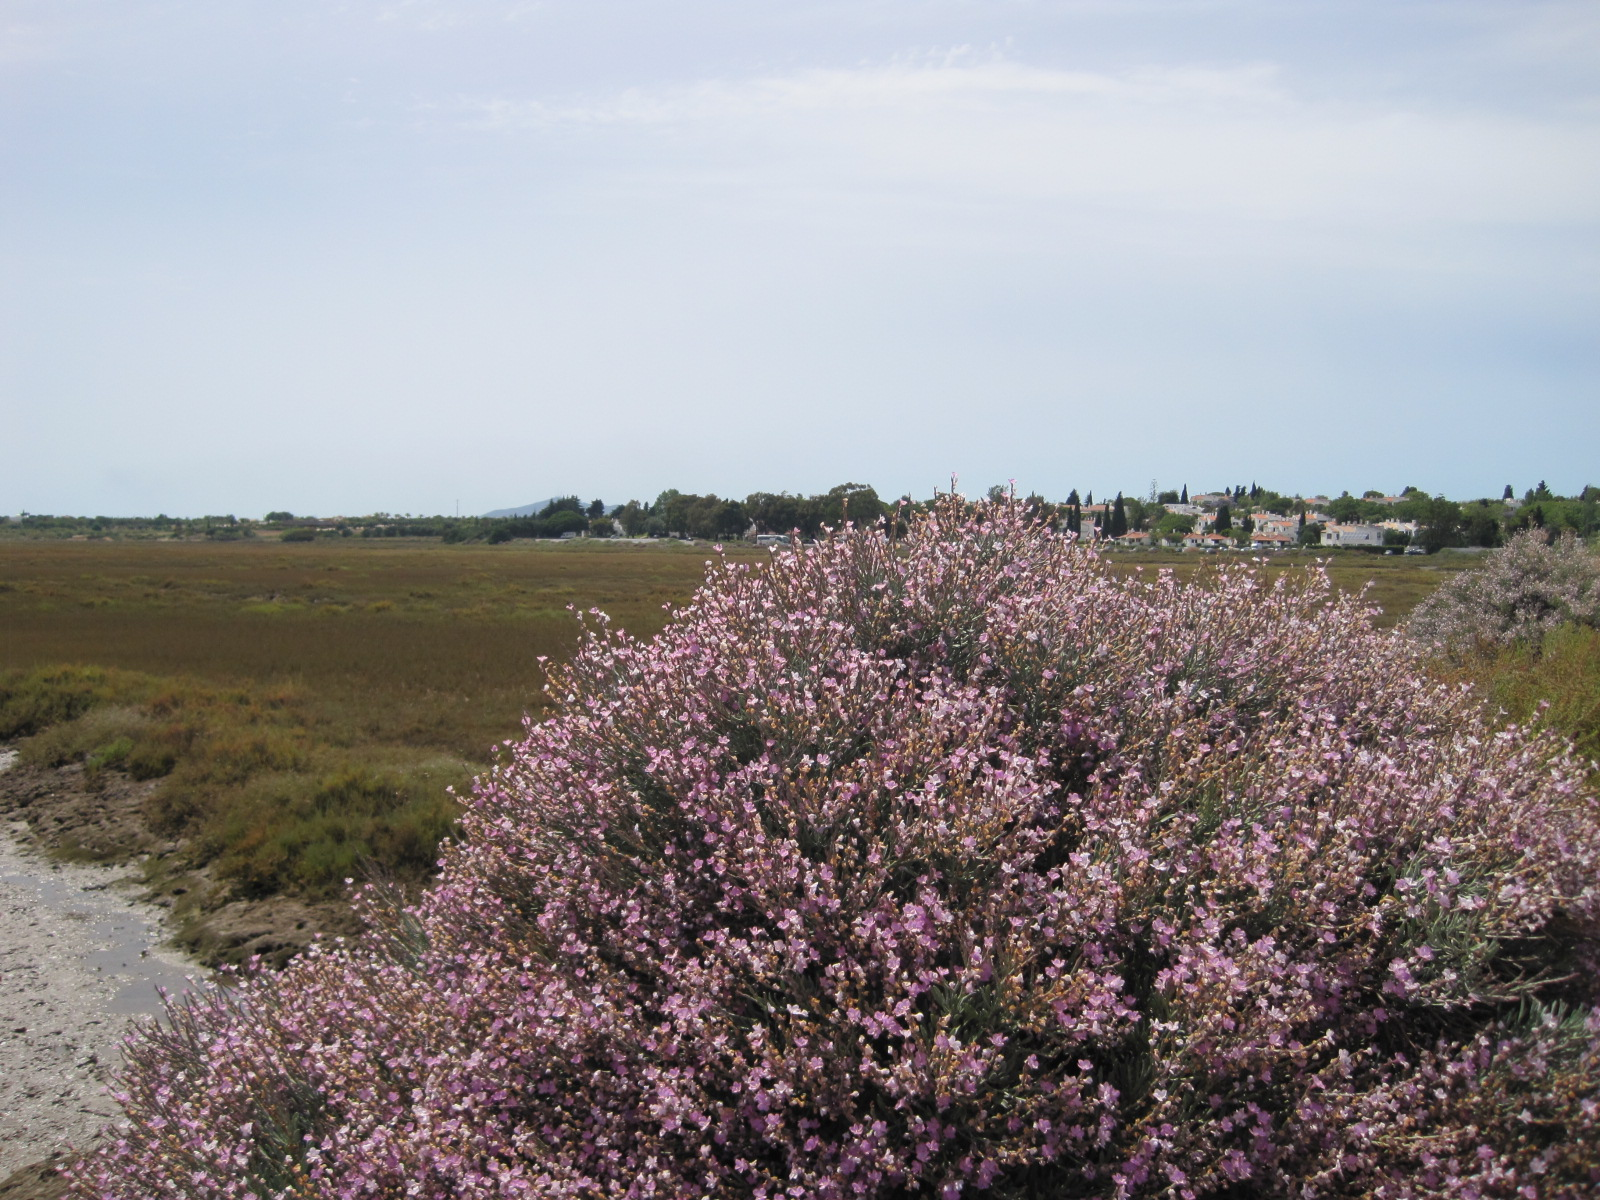 The sea broome in delicate shades of lilac